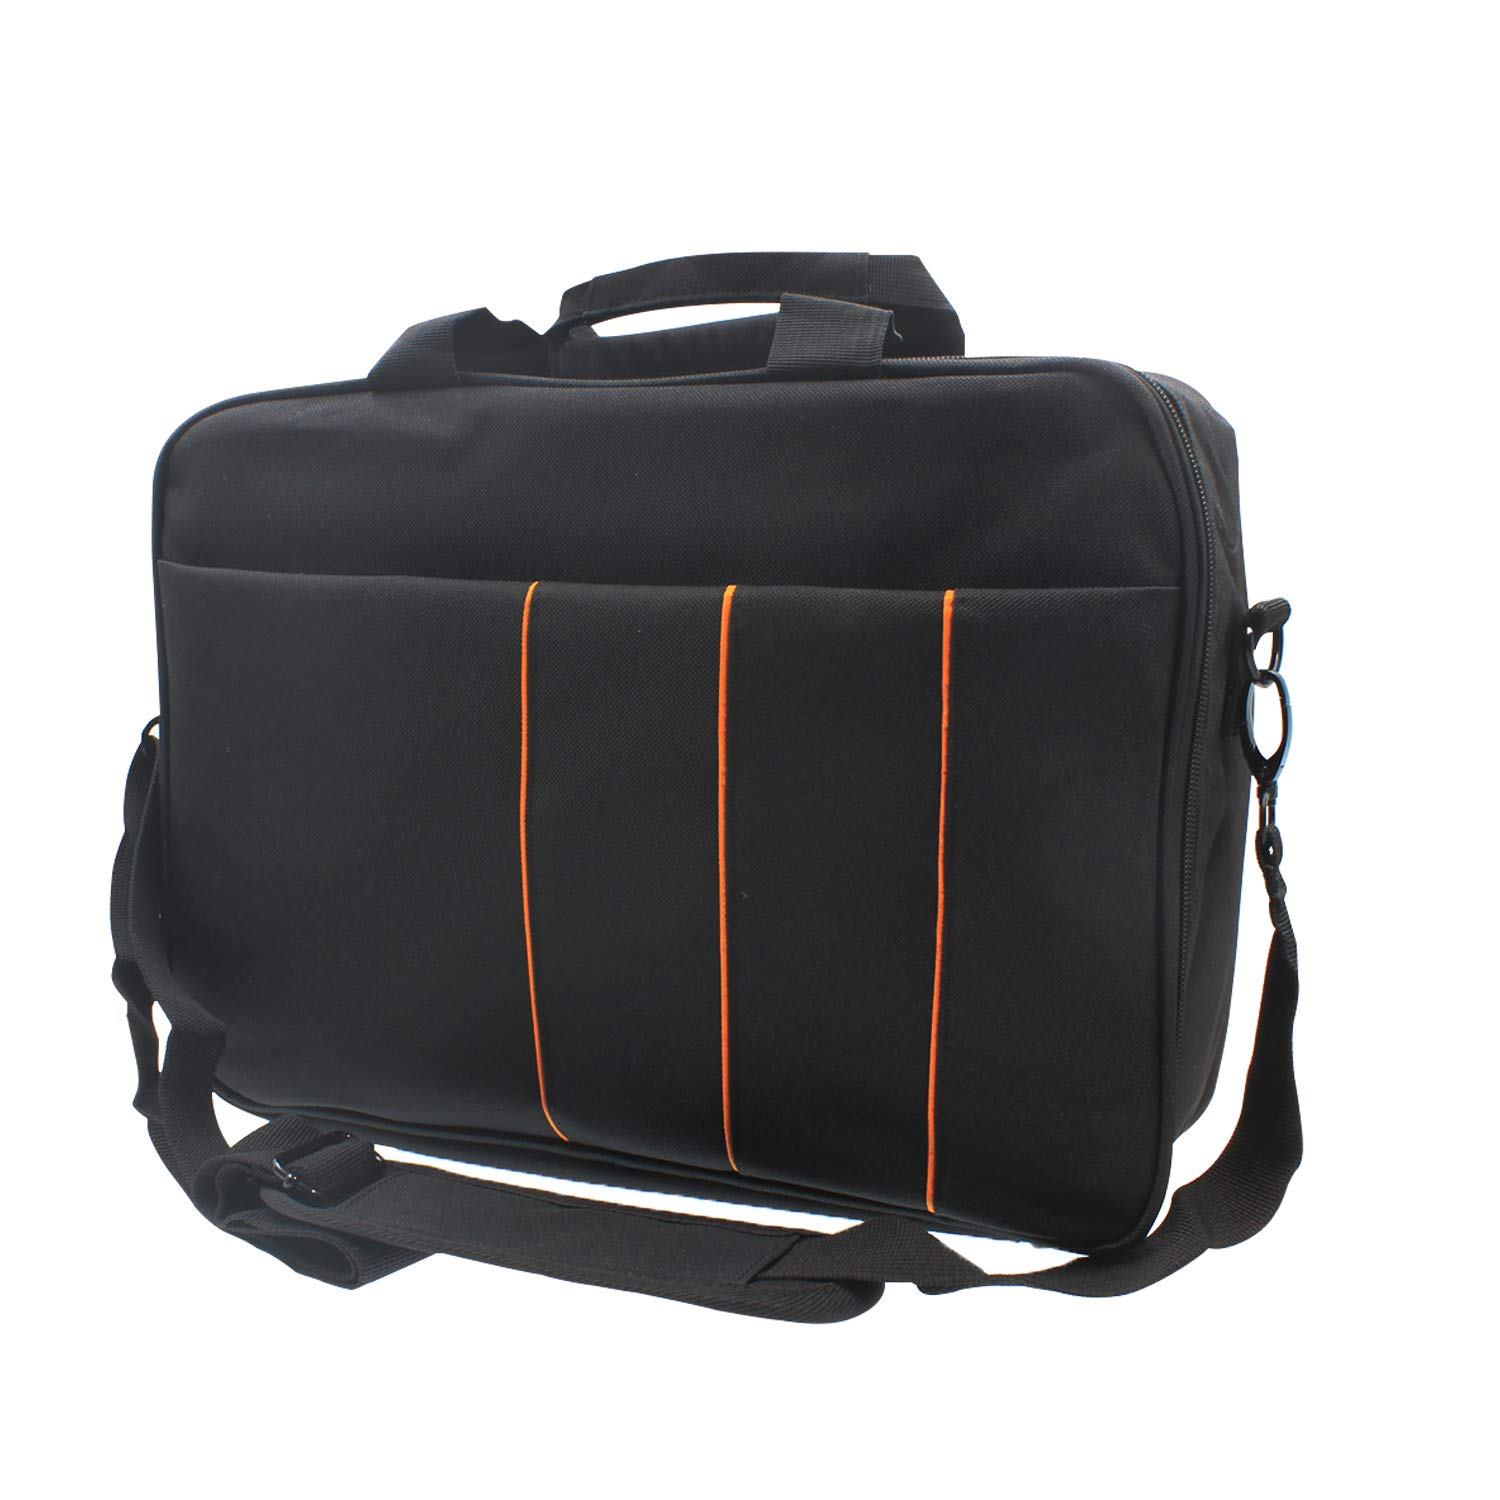 BeVision Projector Case, Large Size, 16x12 inches, Projector Carrying Bag with Waterproof Hard Shell Frame, for Epson, Acer, Benq, LG etc